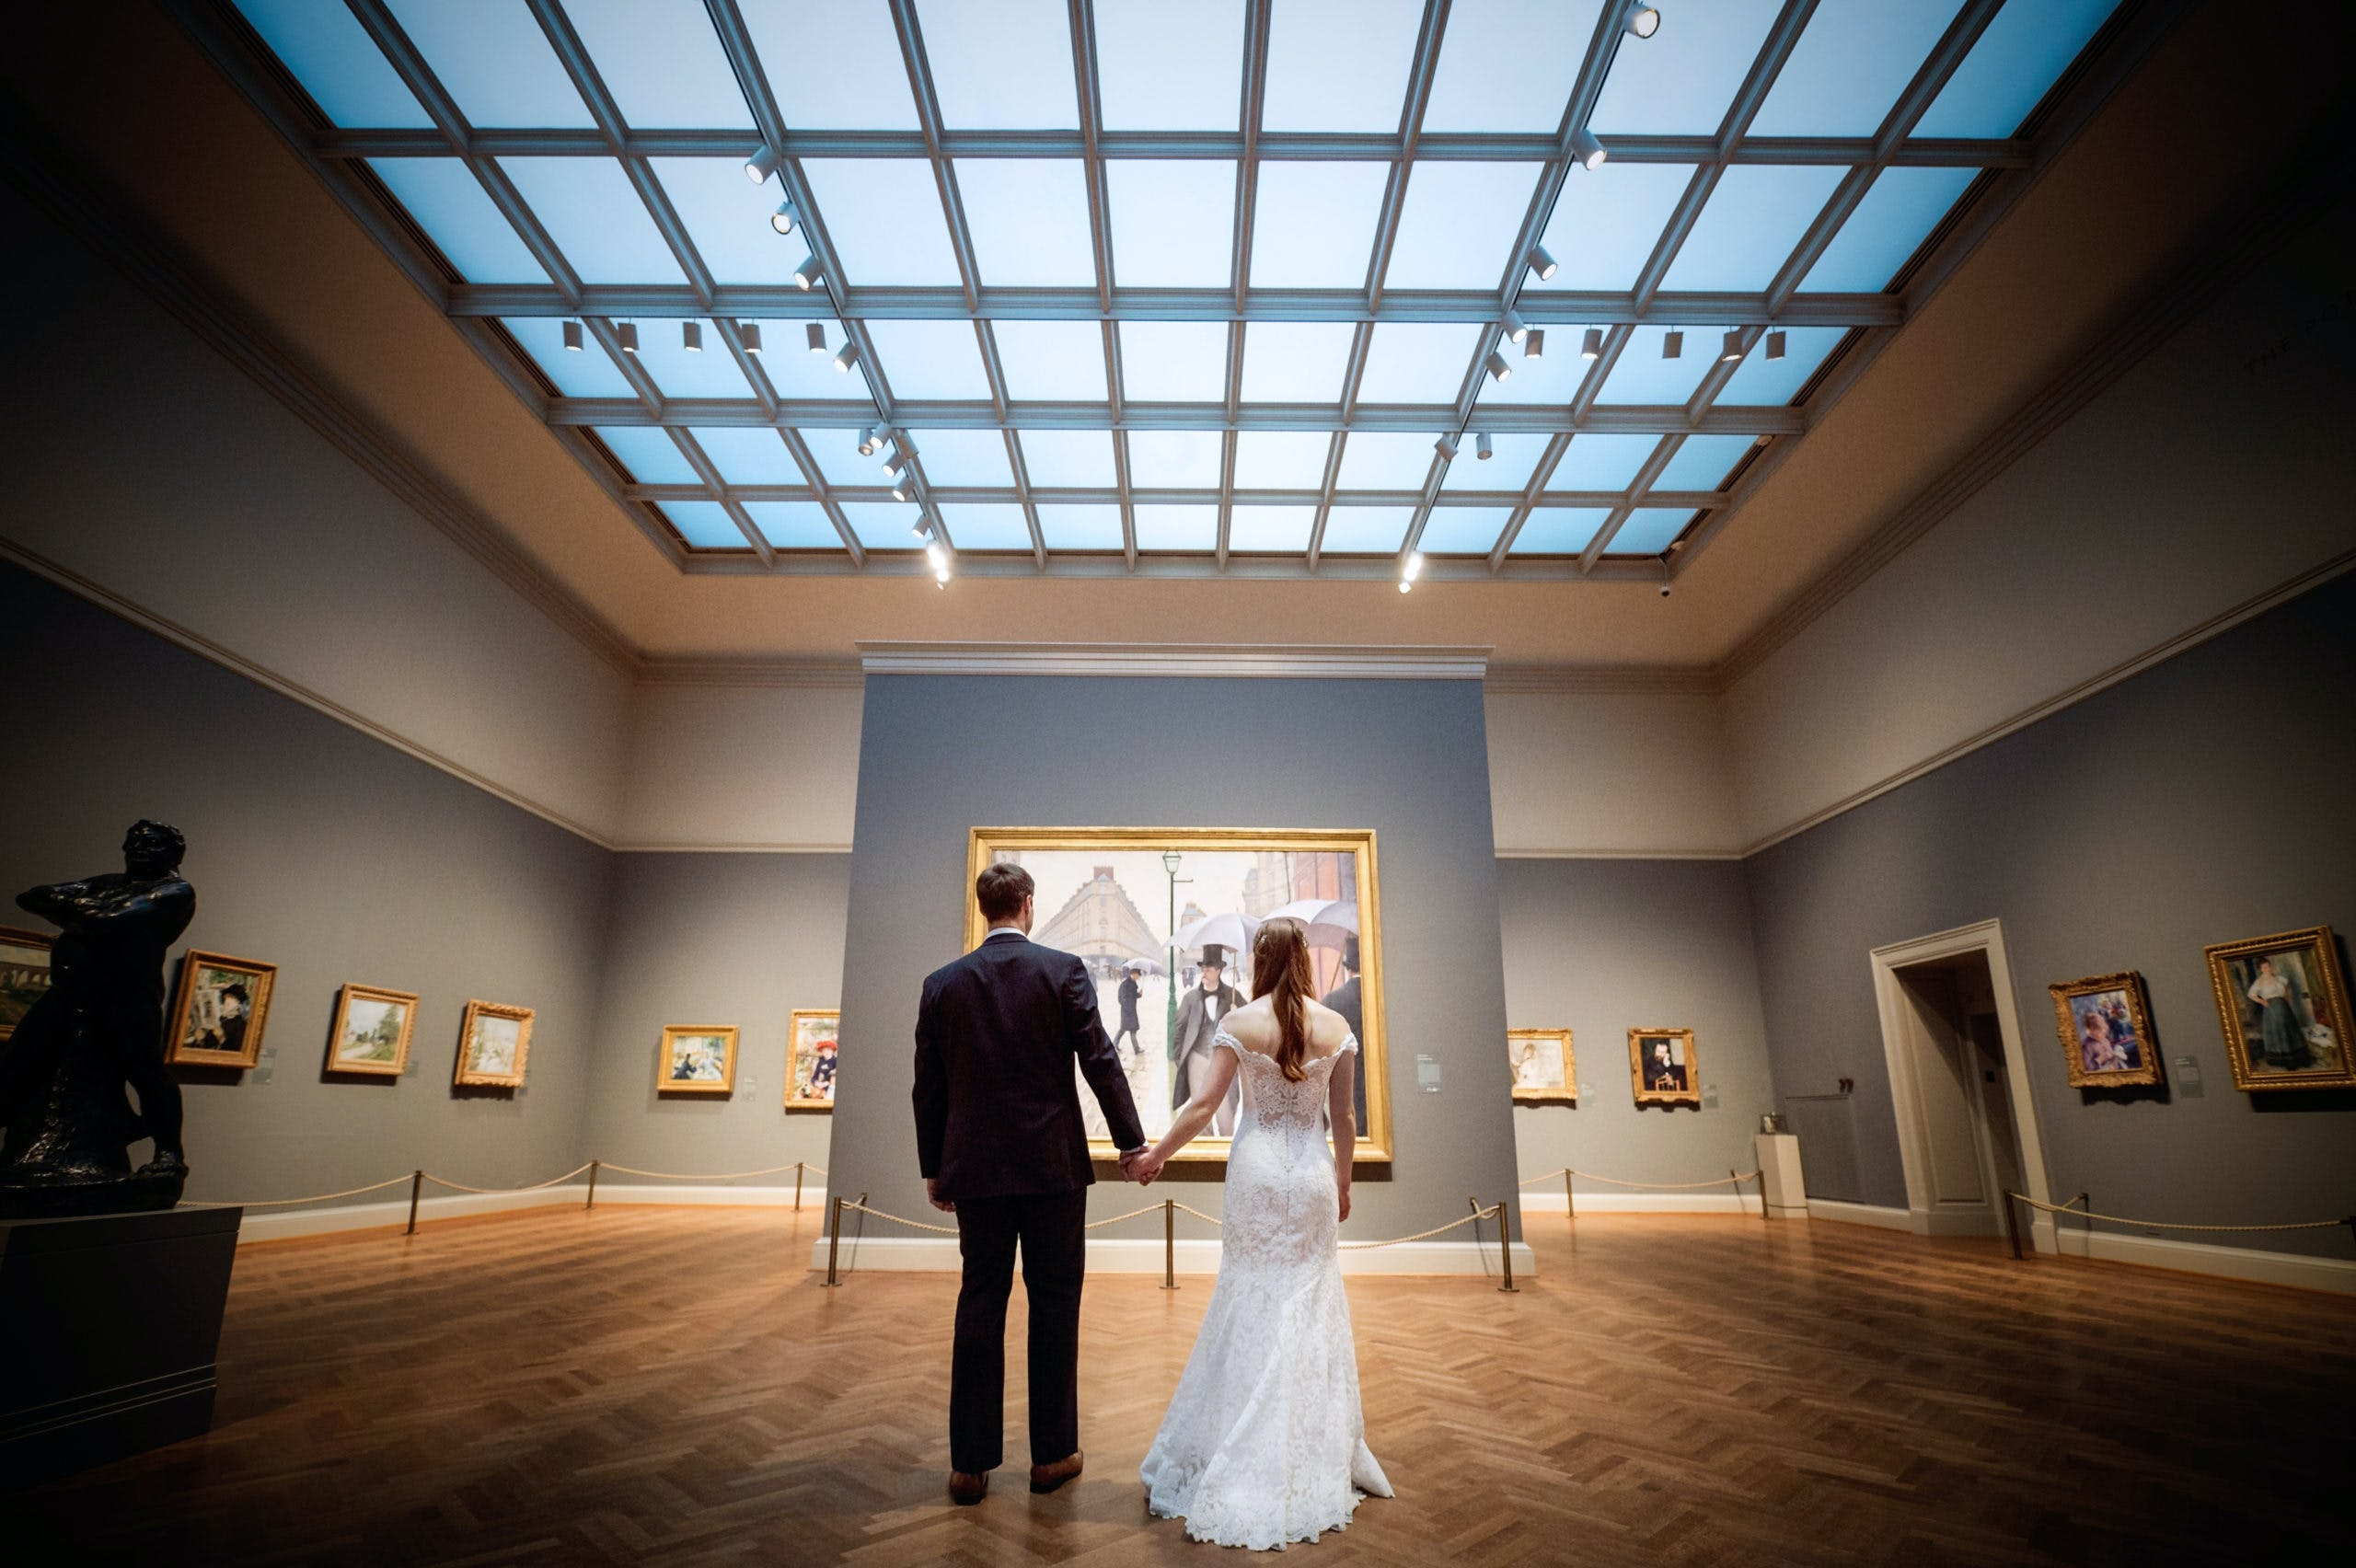 Shot of bride and groom from behind looking at art in museum   PartySlate